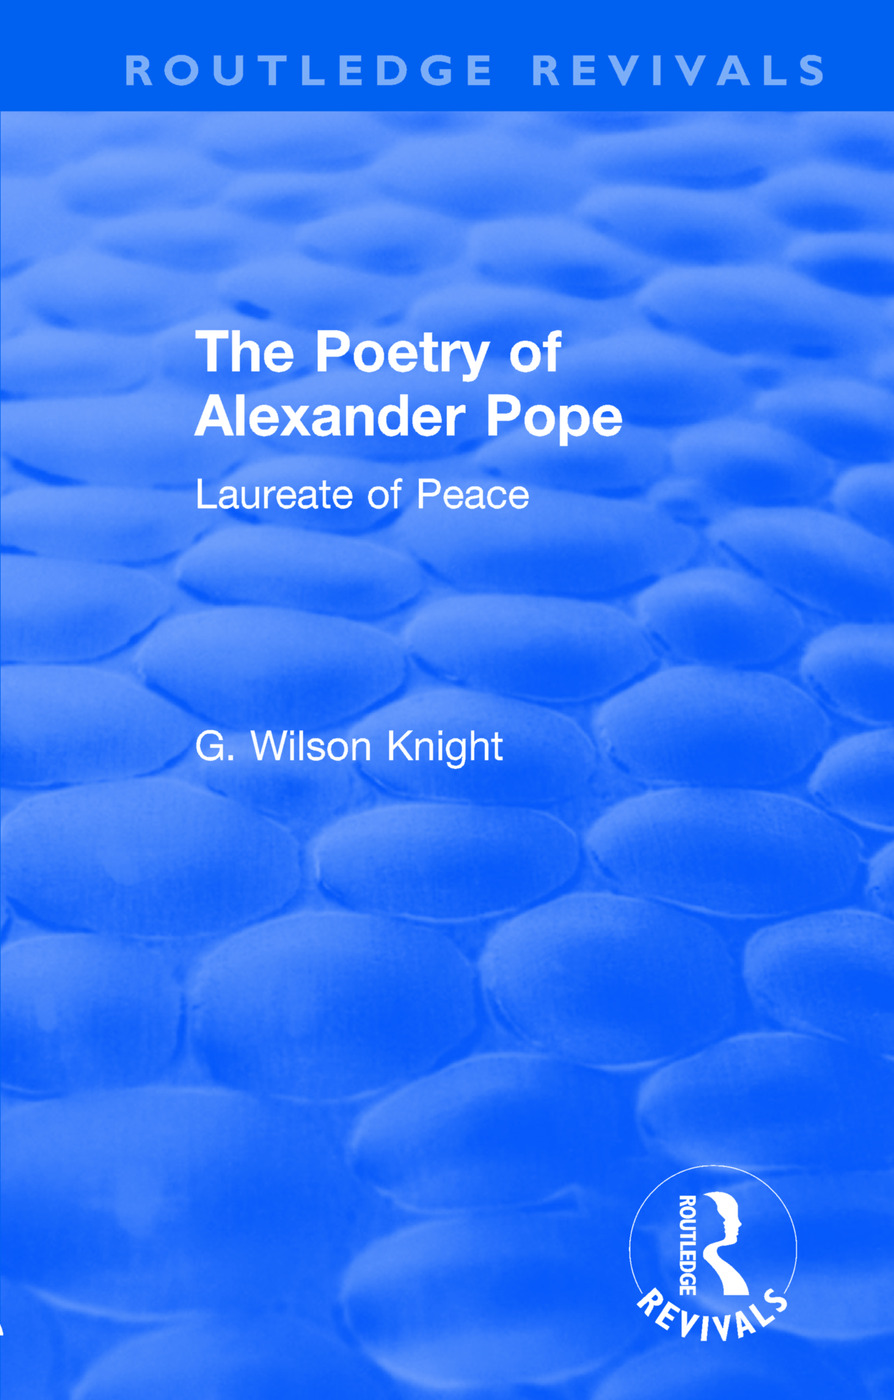 Routledge Revivals: The Poetry of Alexander Pope (1955): Laureate of Peace book cover